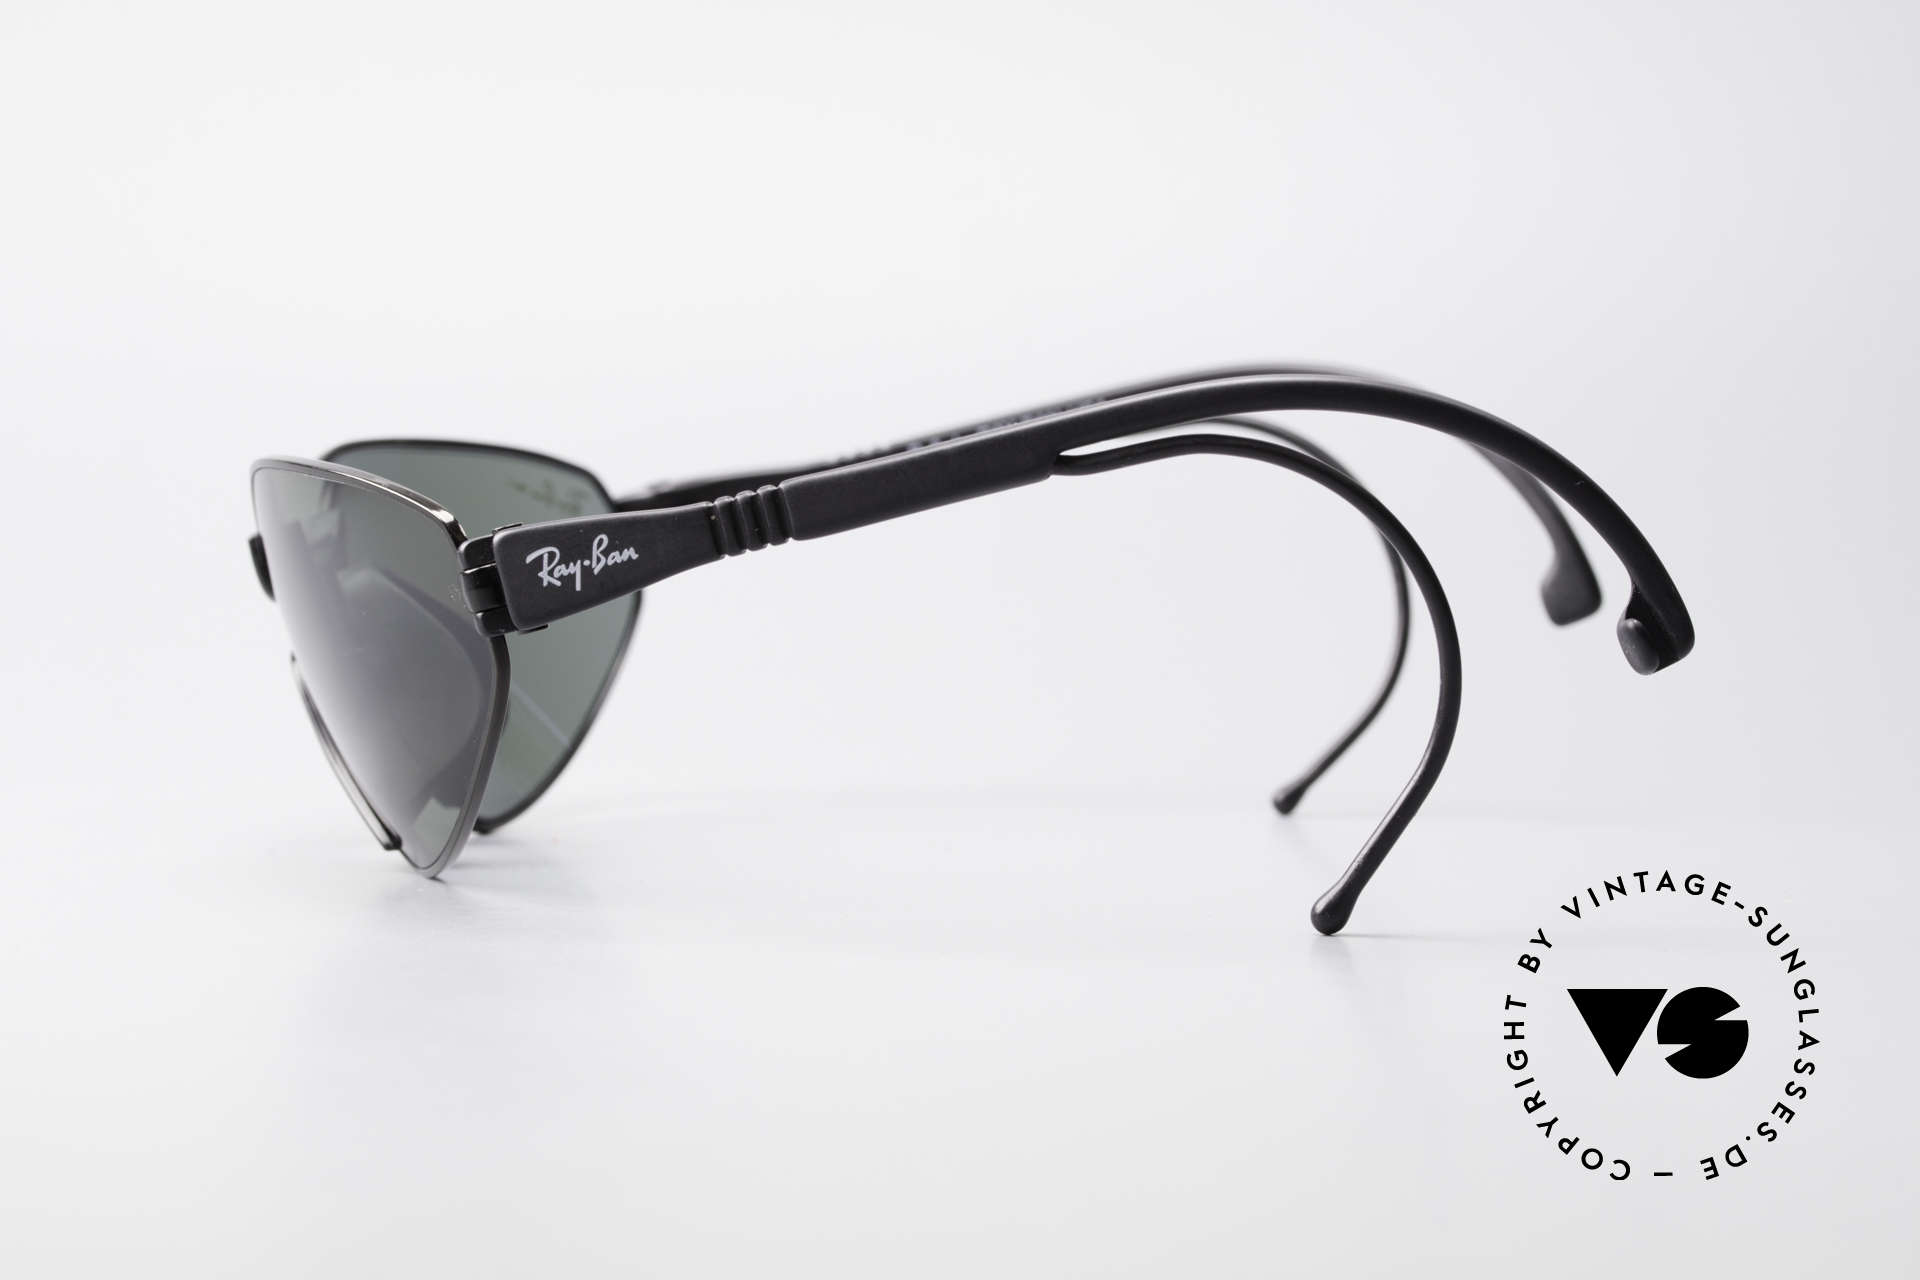 Ray Ban Sport Series 1 G20 Chromax B&L Sun Lenses, NO RETRO sunglasses, but an old USA-ORIGINAL, Made for Men